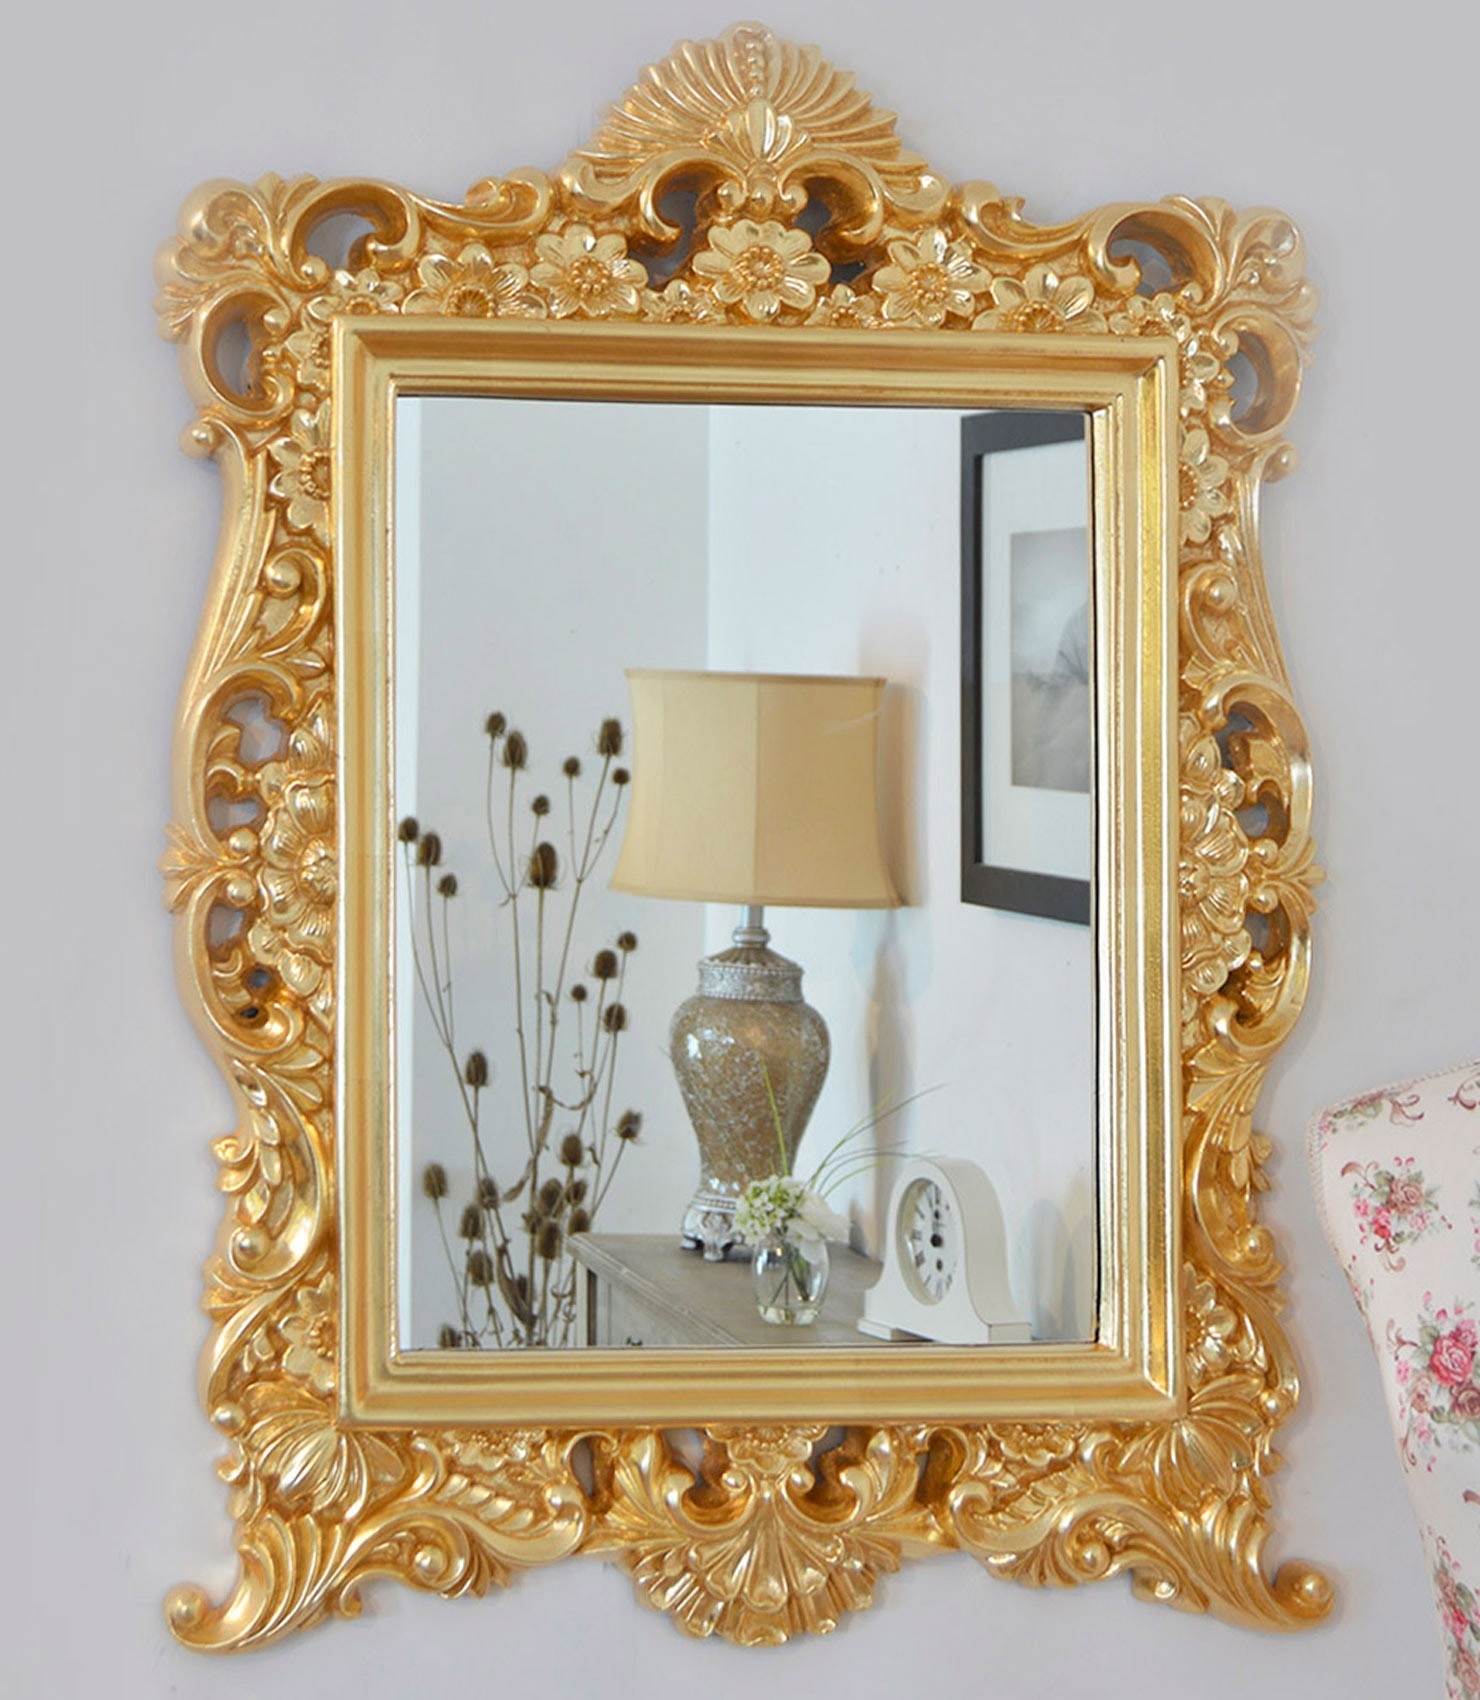 Large Gold Baroque Style Portrait Ornate Wall Mirror 2ft9 X 2ft1 Intended For Cheap Baroque Mirror (Image 9 of 15)